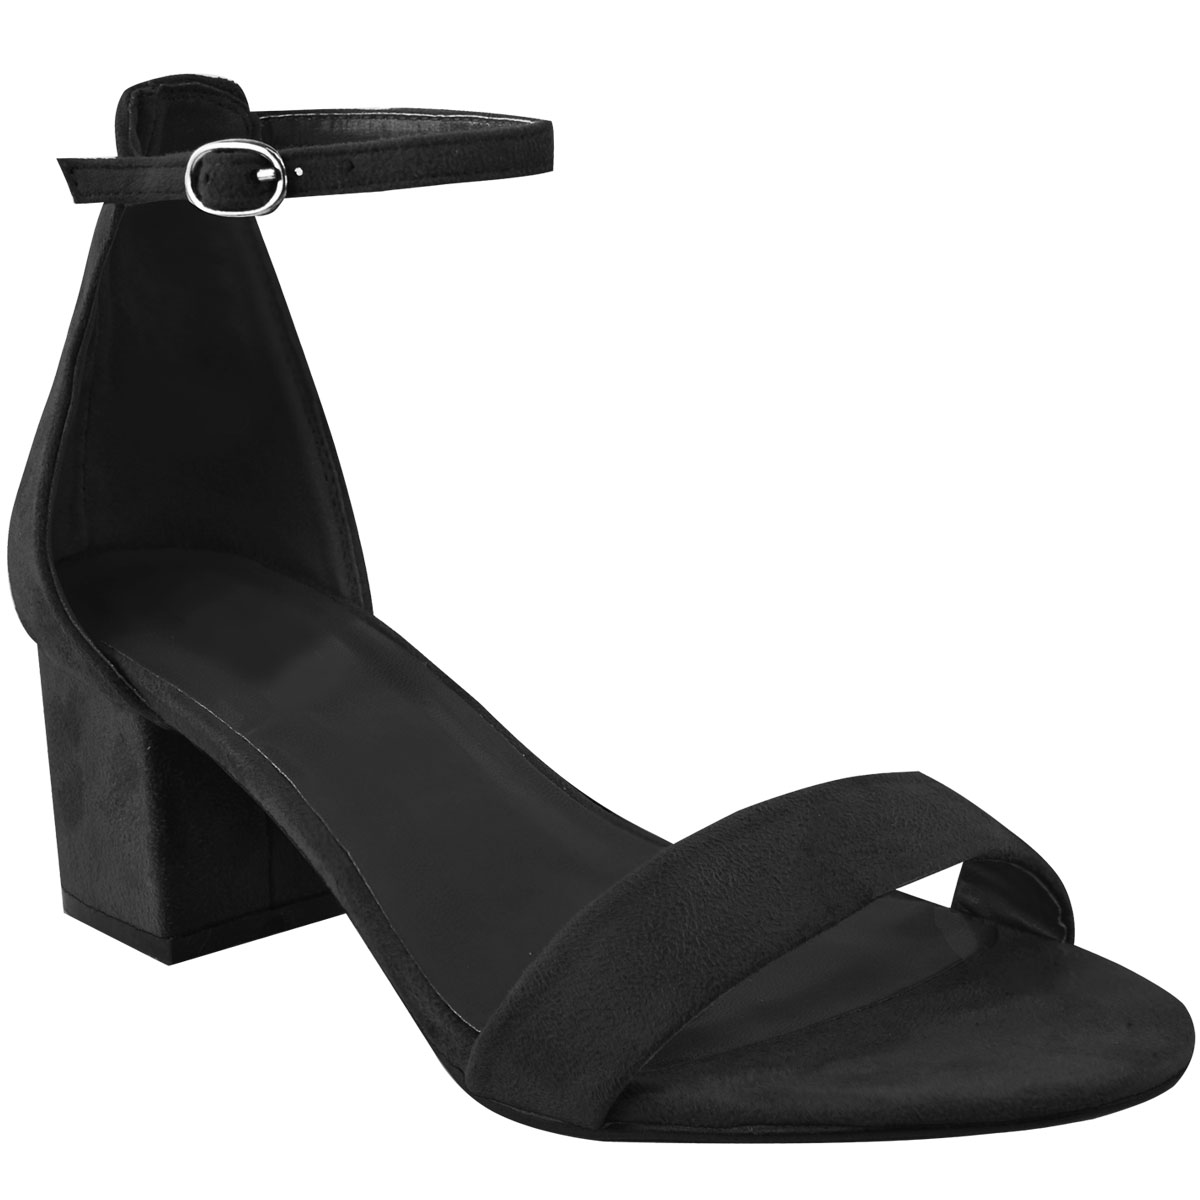 Womens-Ladies-Low-Block-Heel-Black-Sandals-Ankle-Strap-Work-Smart-Shoes-Size